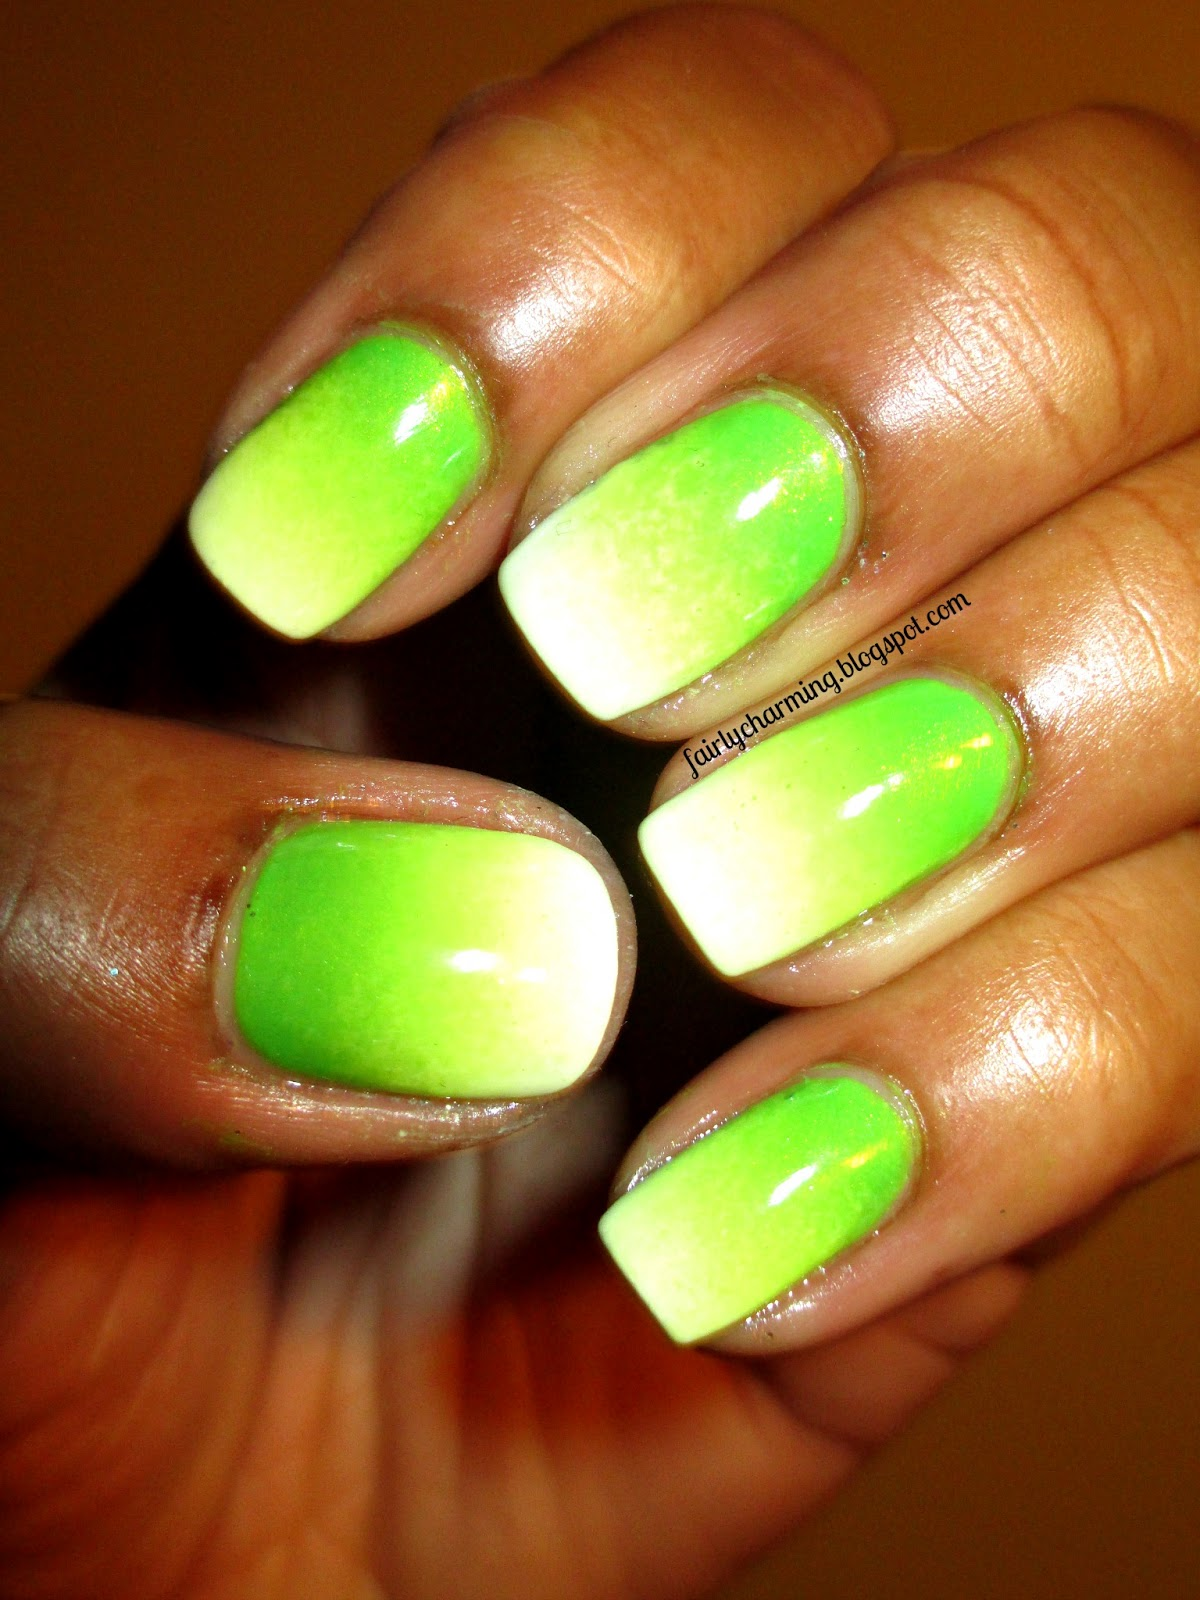 Green ombre nail ideas monday july 3 2017 prinsesfo Images